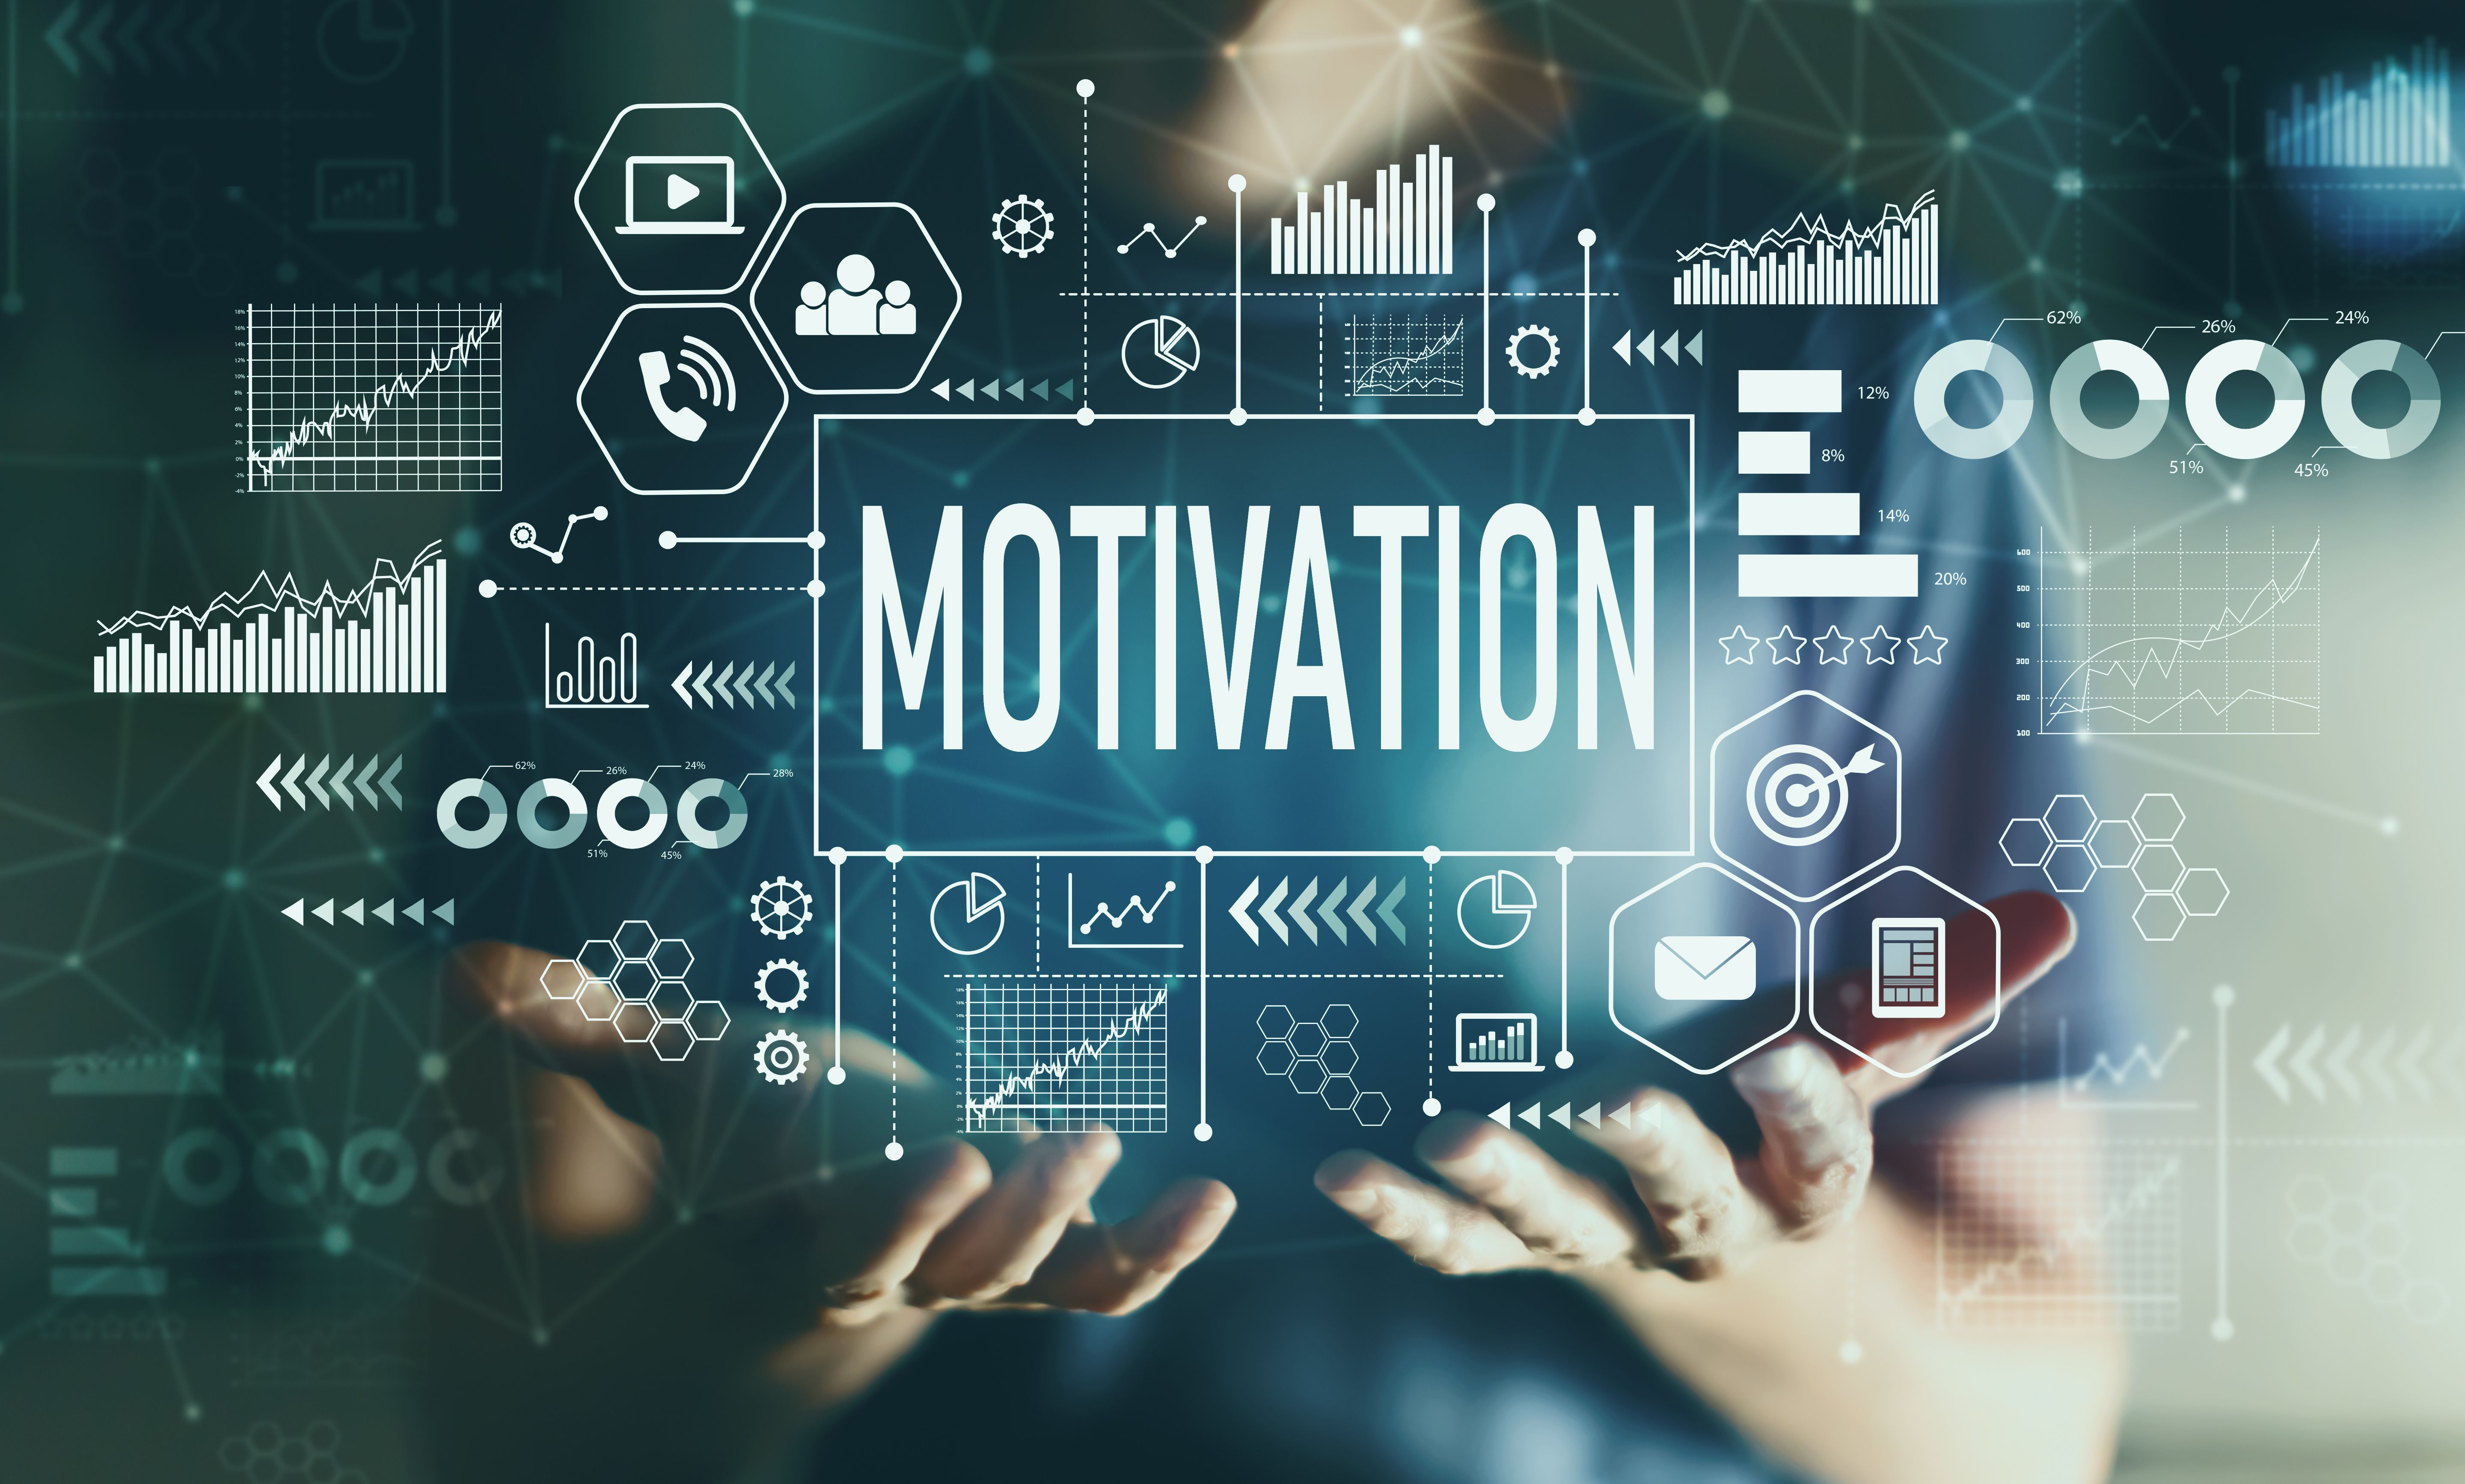 How to Get Motivated: Intrinsic vs Extrinsic Motivation